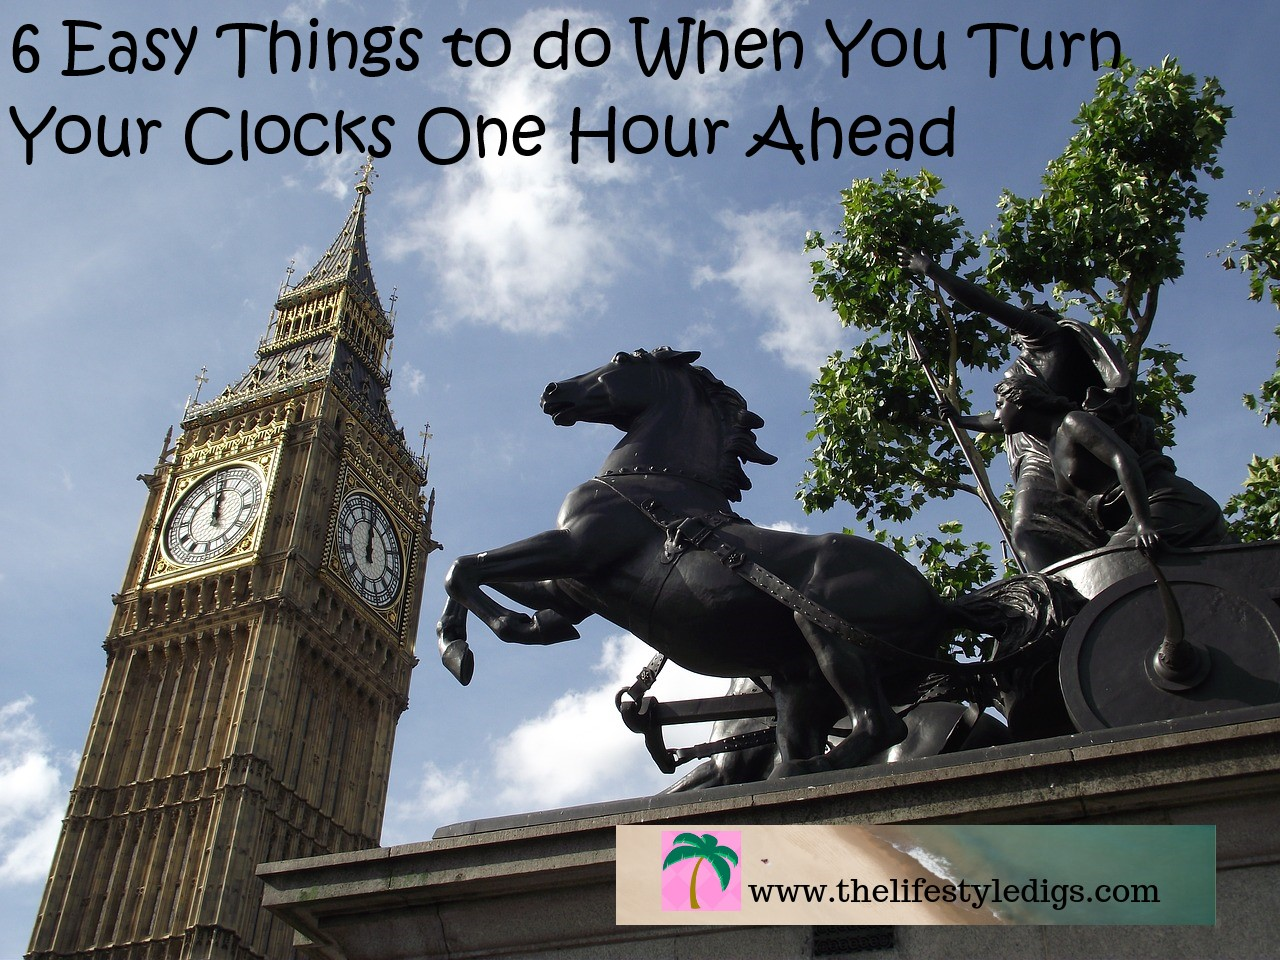 6 Easy Things to do When You Turn Your Clocks One Hour Ahead